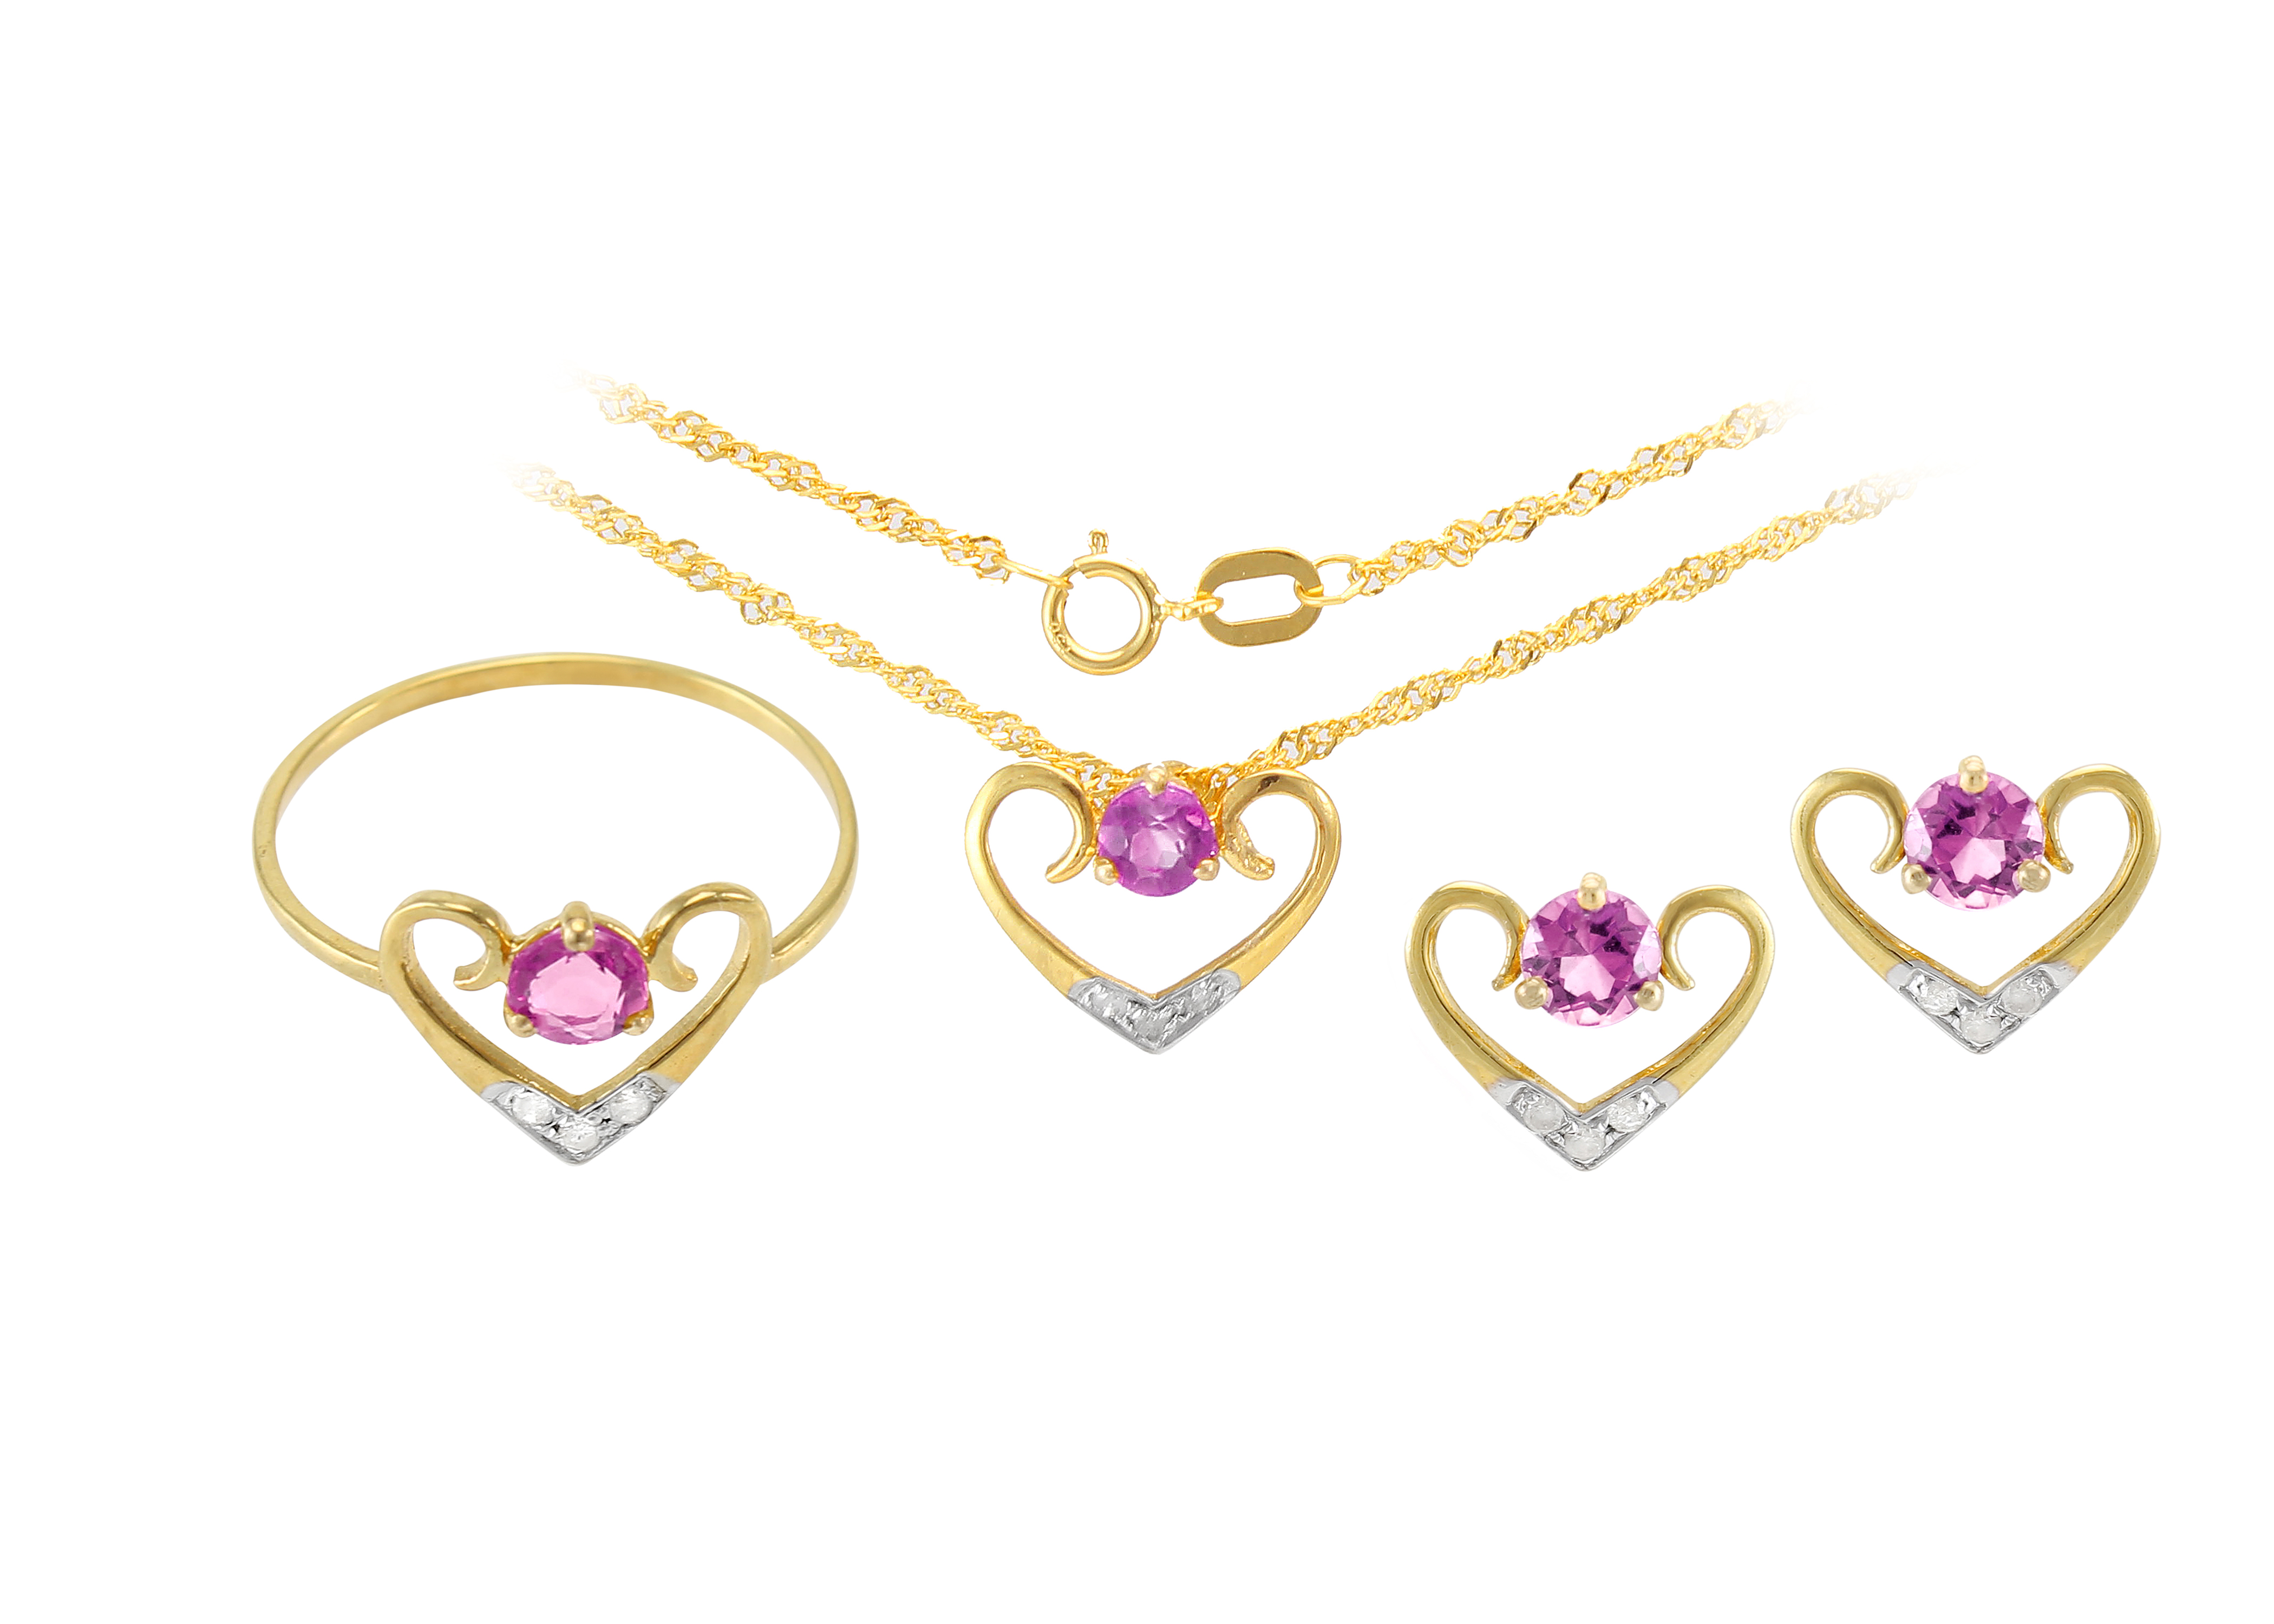 VP Jewels: 18K Solid Yellow Gold 0.12CT Genuine Diamonds  and 4mm Amethyst   Heart Jewelry Set